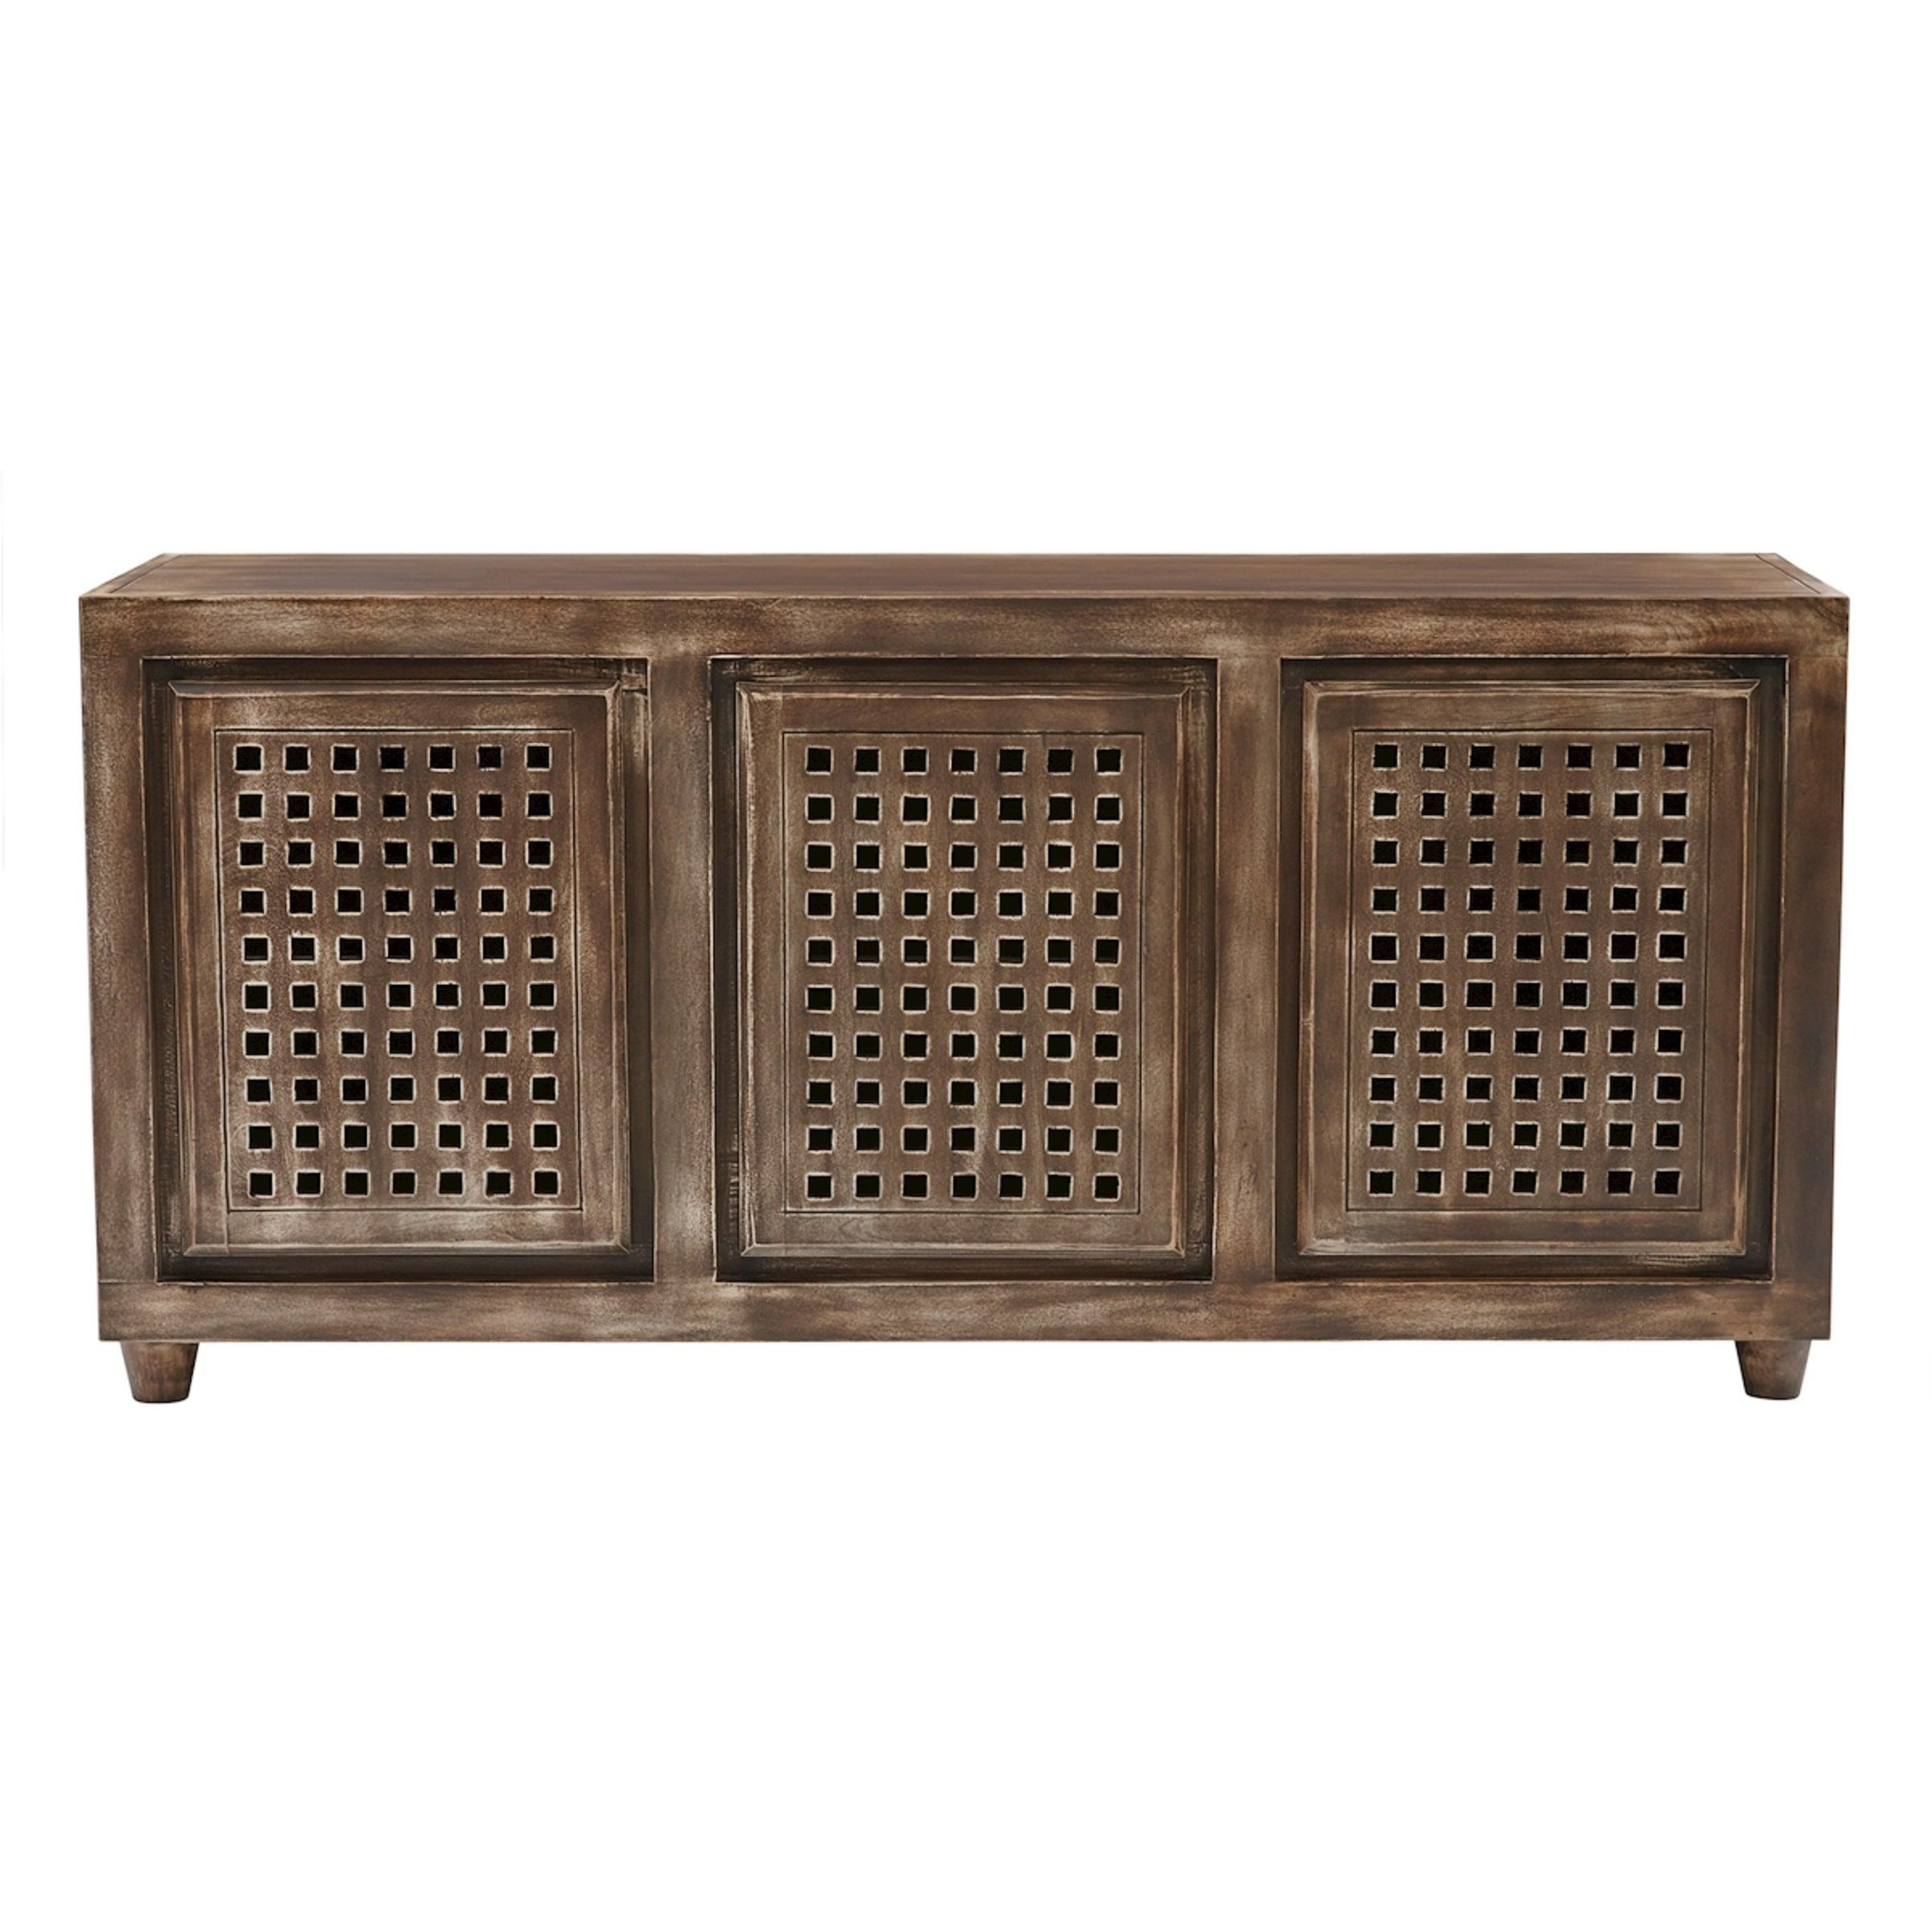 Elk Lighting Gladys Brow Wood Tone Accent Console (Three Drawer Pertaining To Walters Media Console Tables (View 6 of 20)